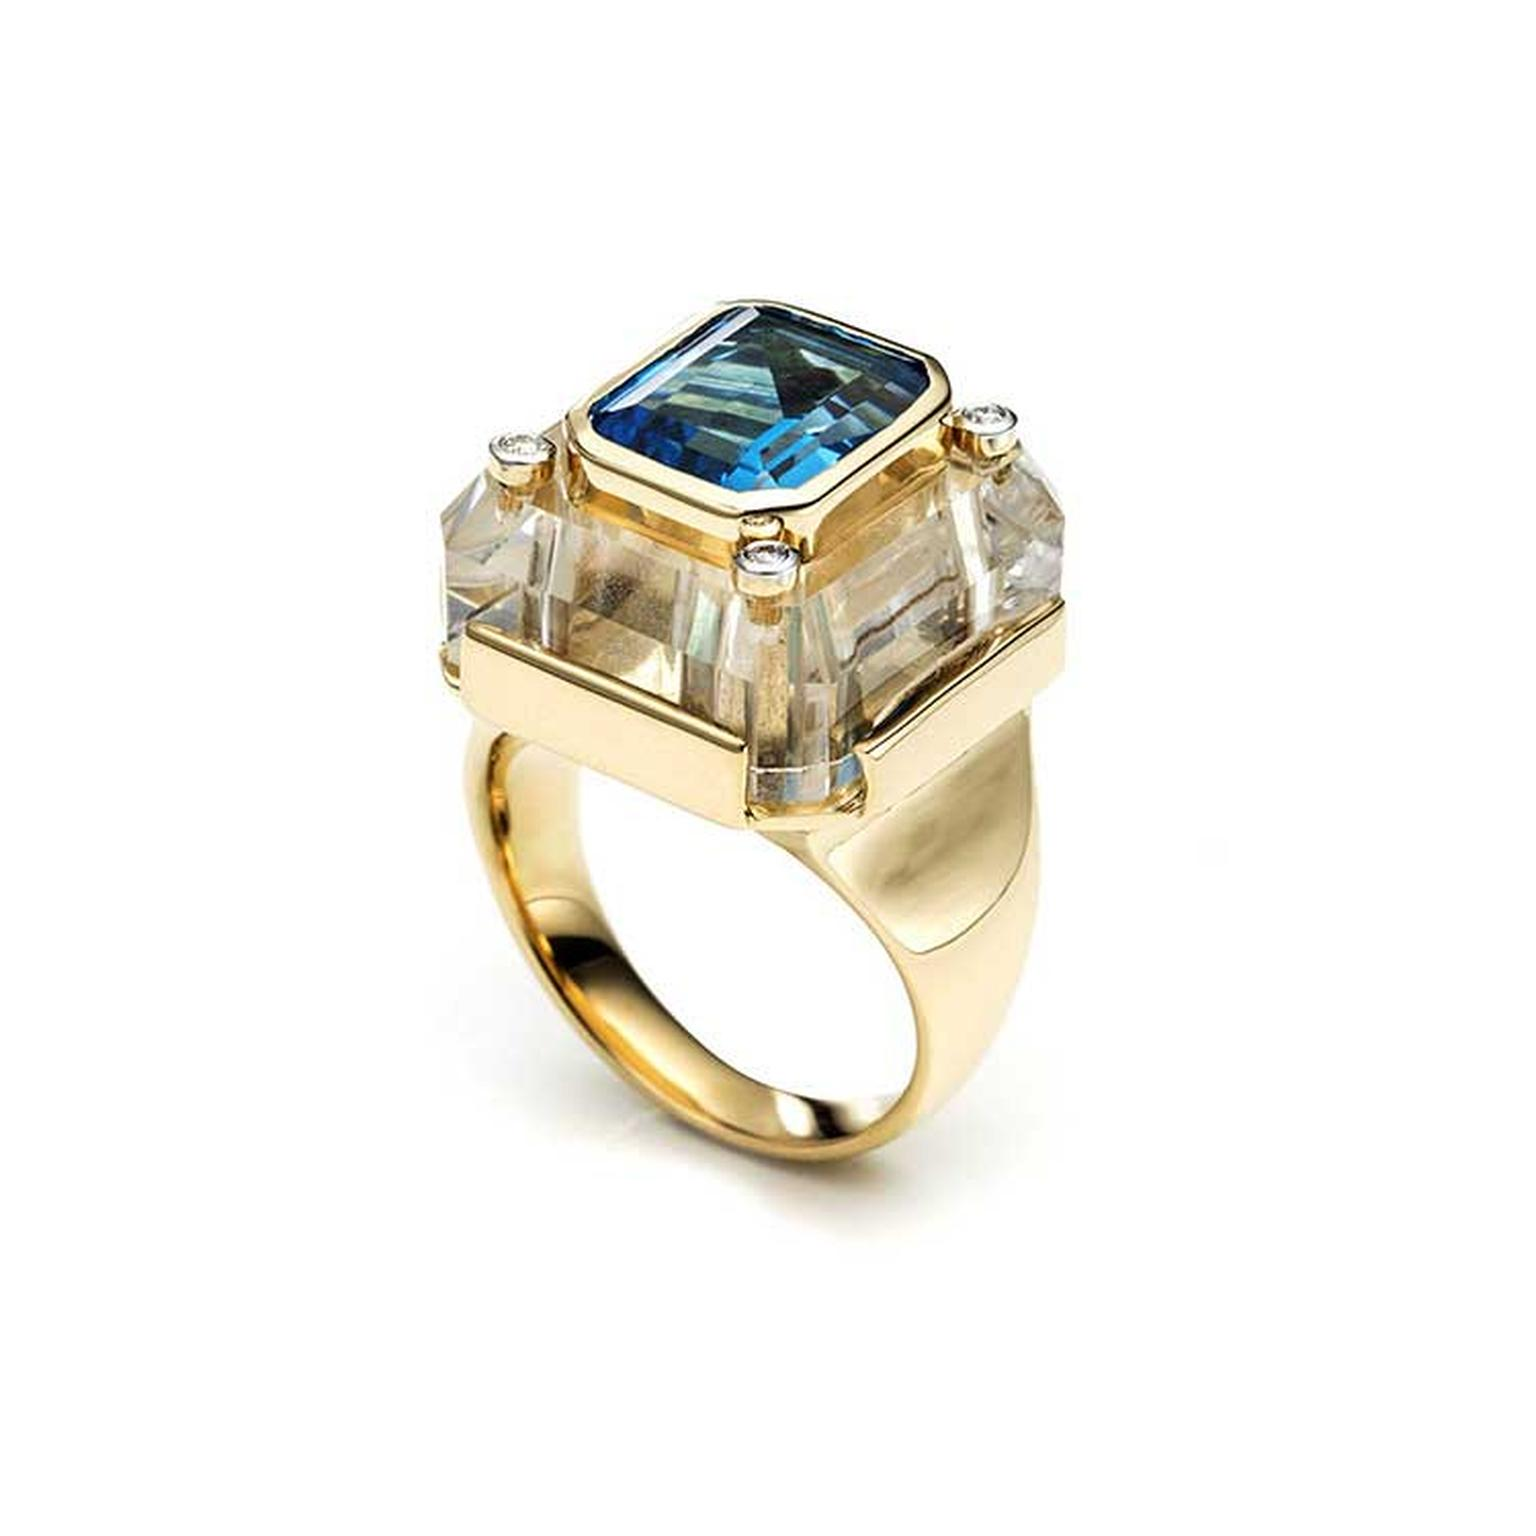 Kara Ross Cava ring in rock crystal with blue topaz